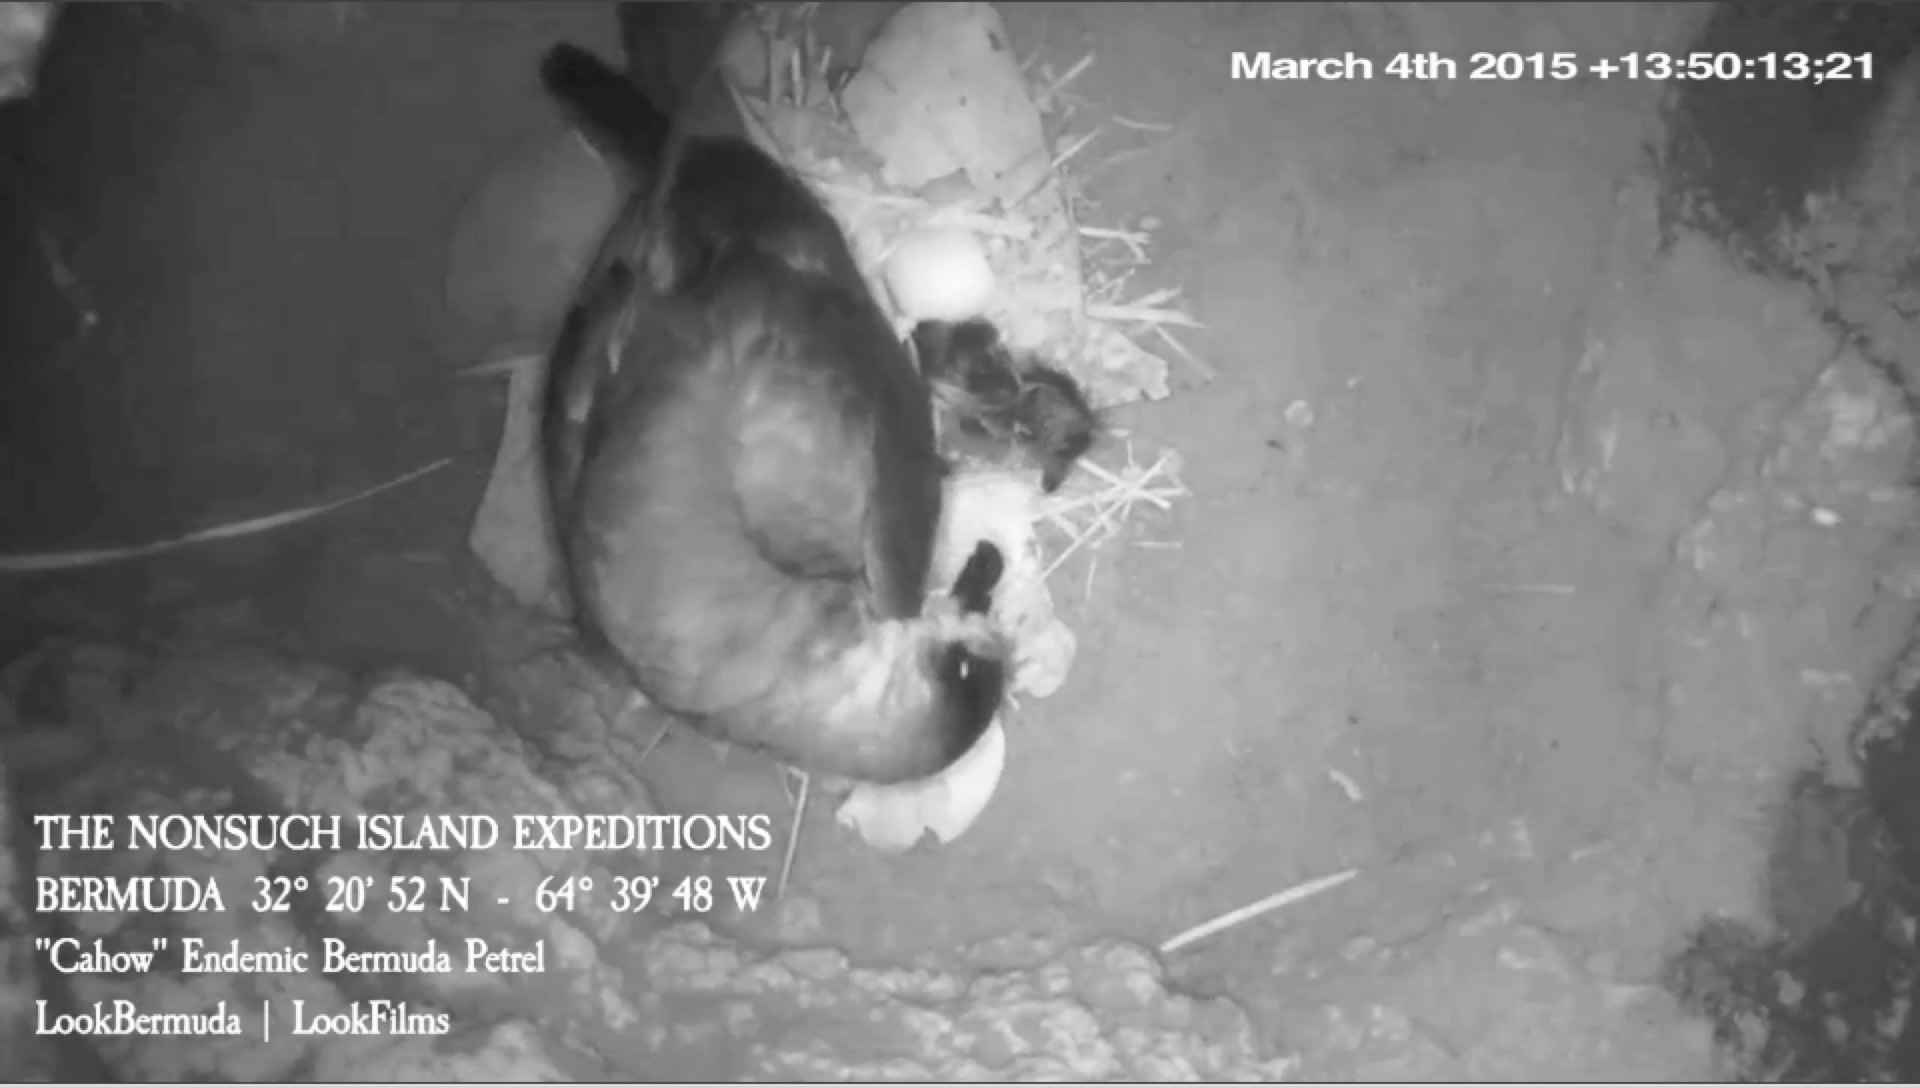 Cahow chick hatching as seen live for the first time ever on the 2015 CahowCam.